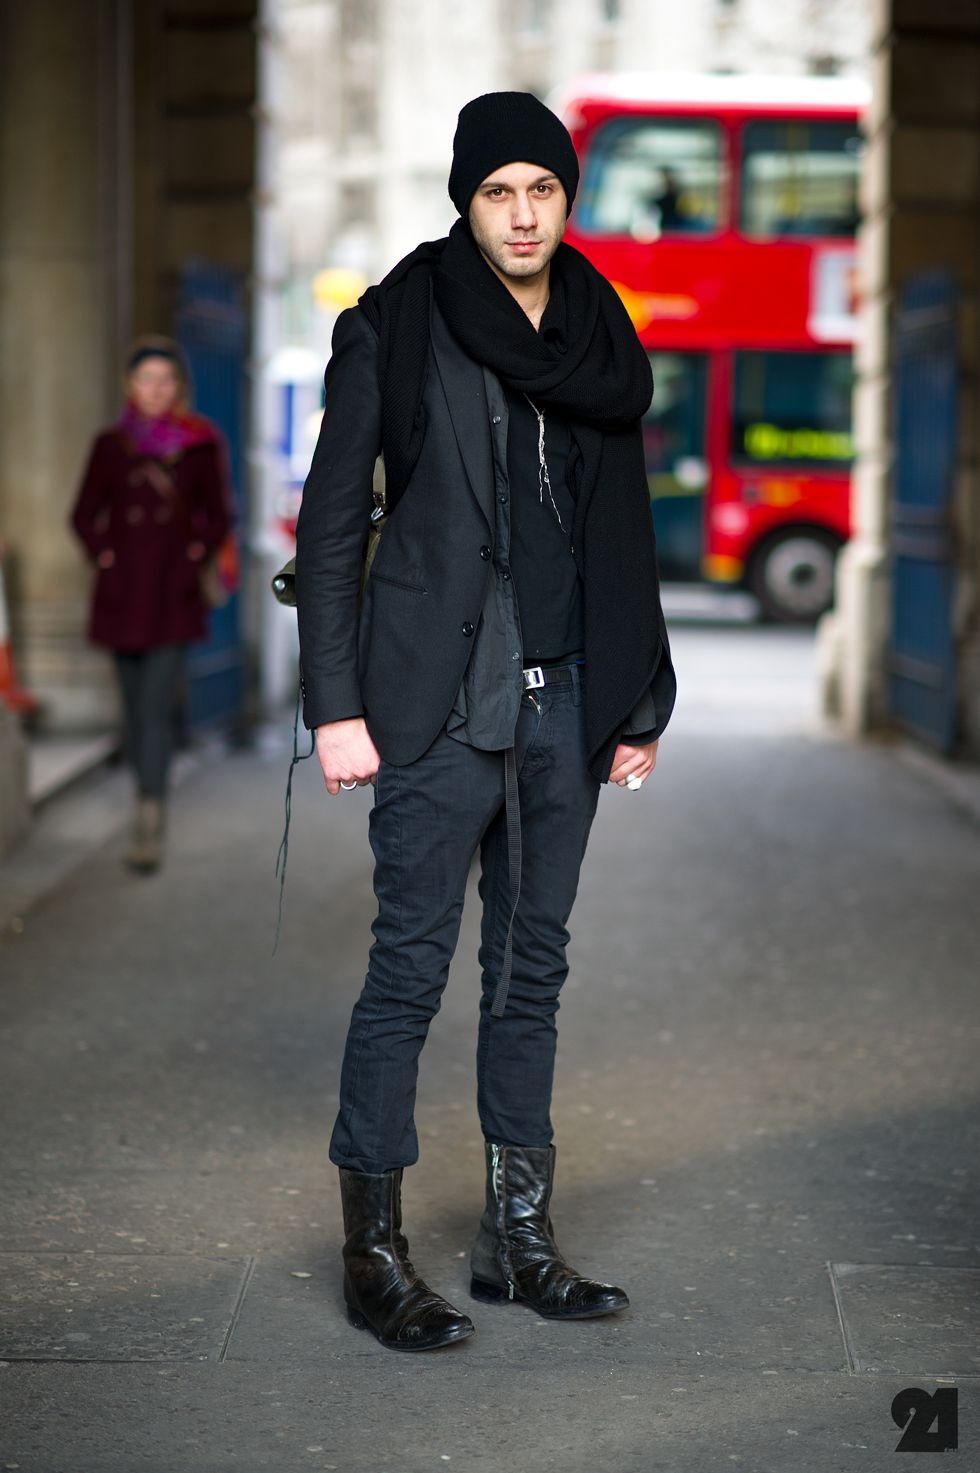 New York Winter Fashion Men